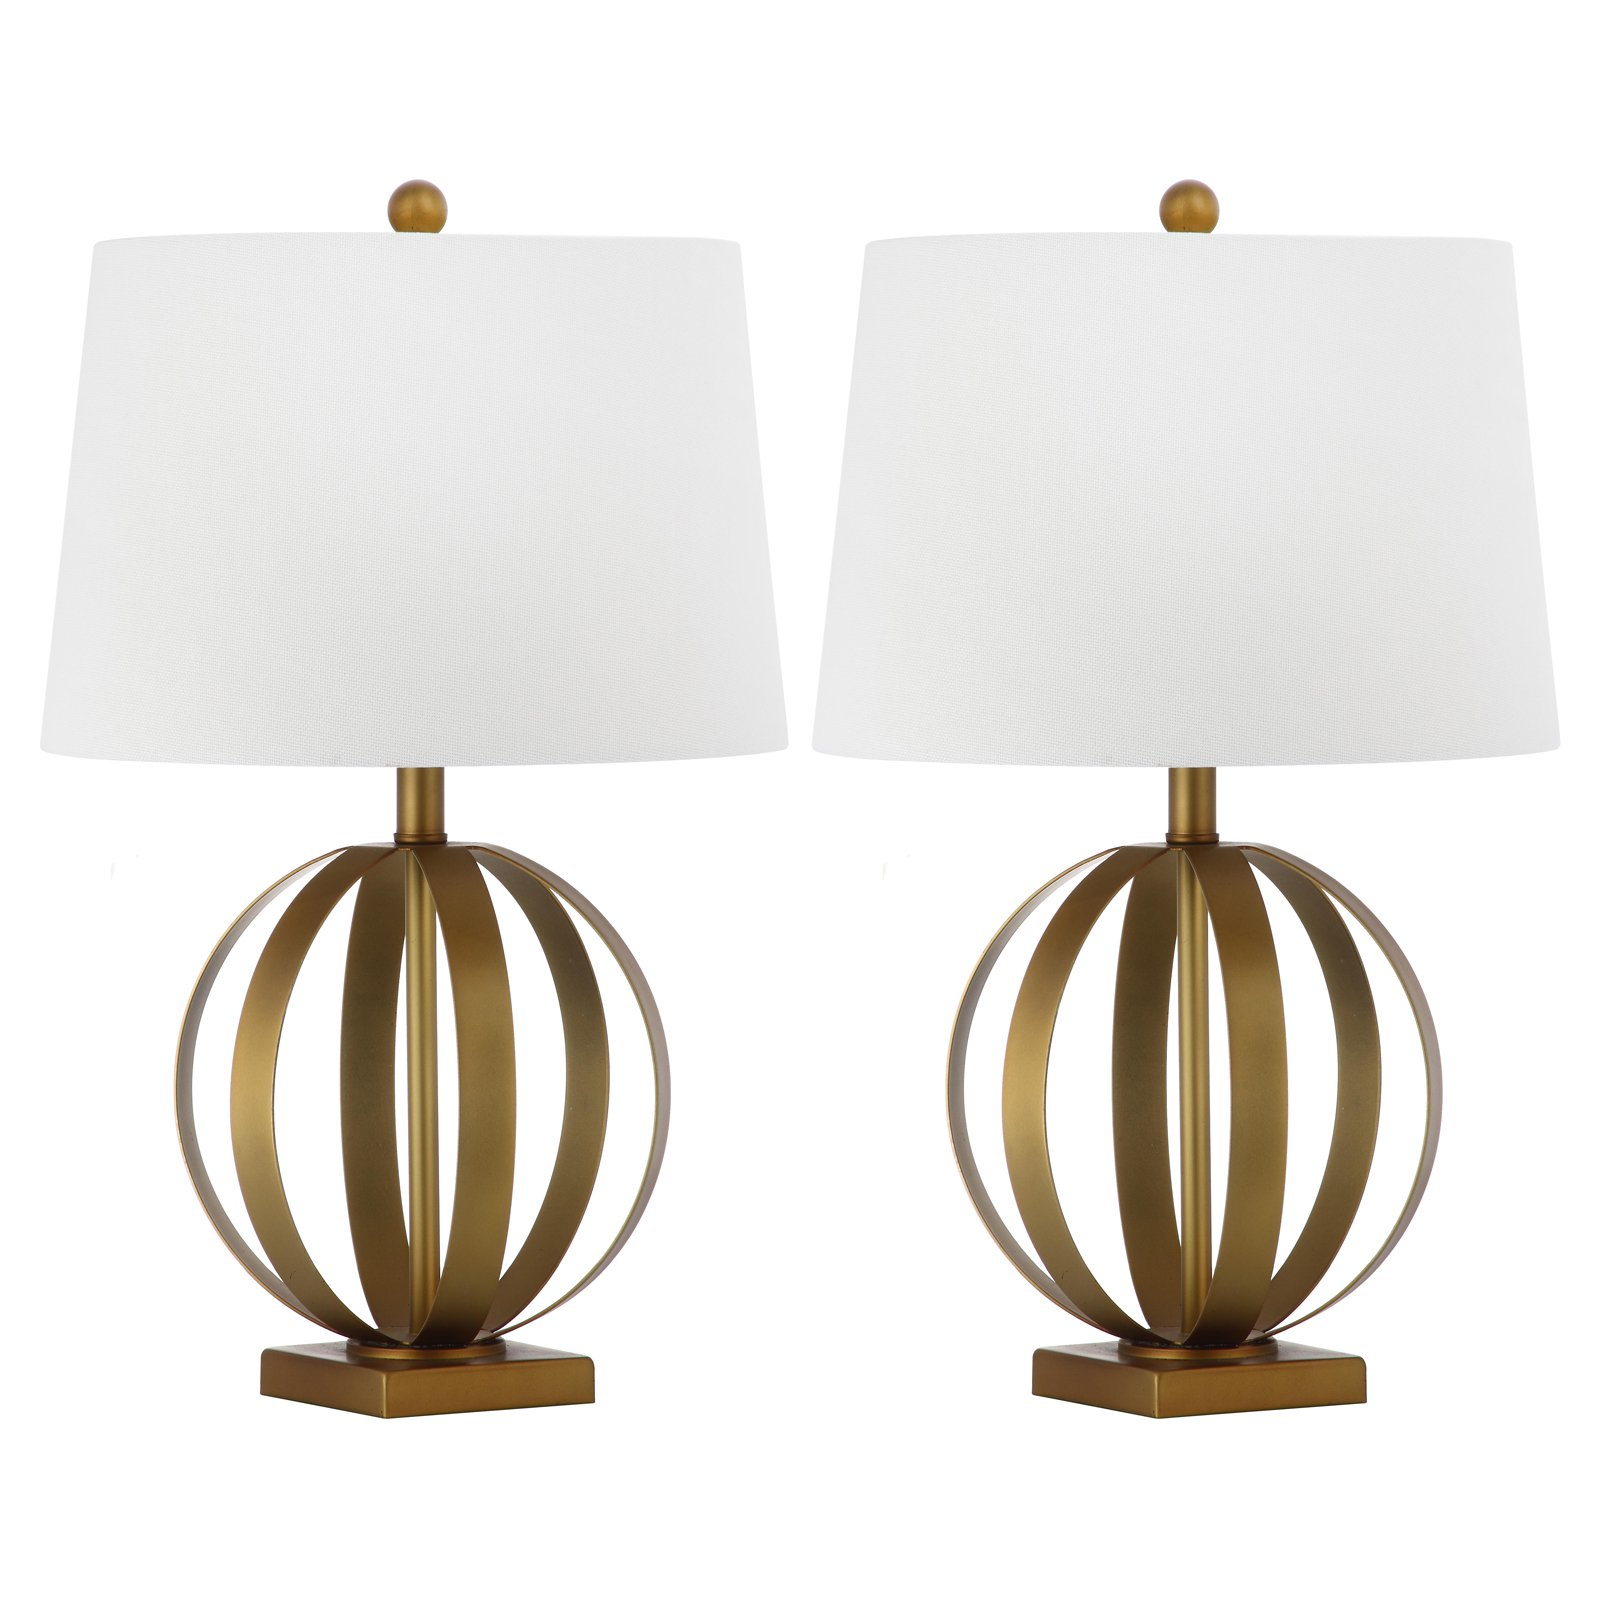 Safavieh Euginia Sphere Table Lamp with CFL Bulb, Gold with Off-White Shade, Set of 2